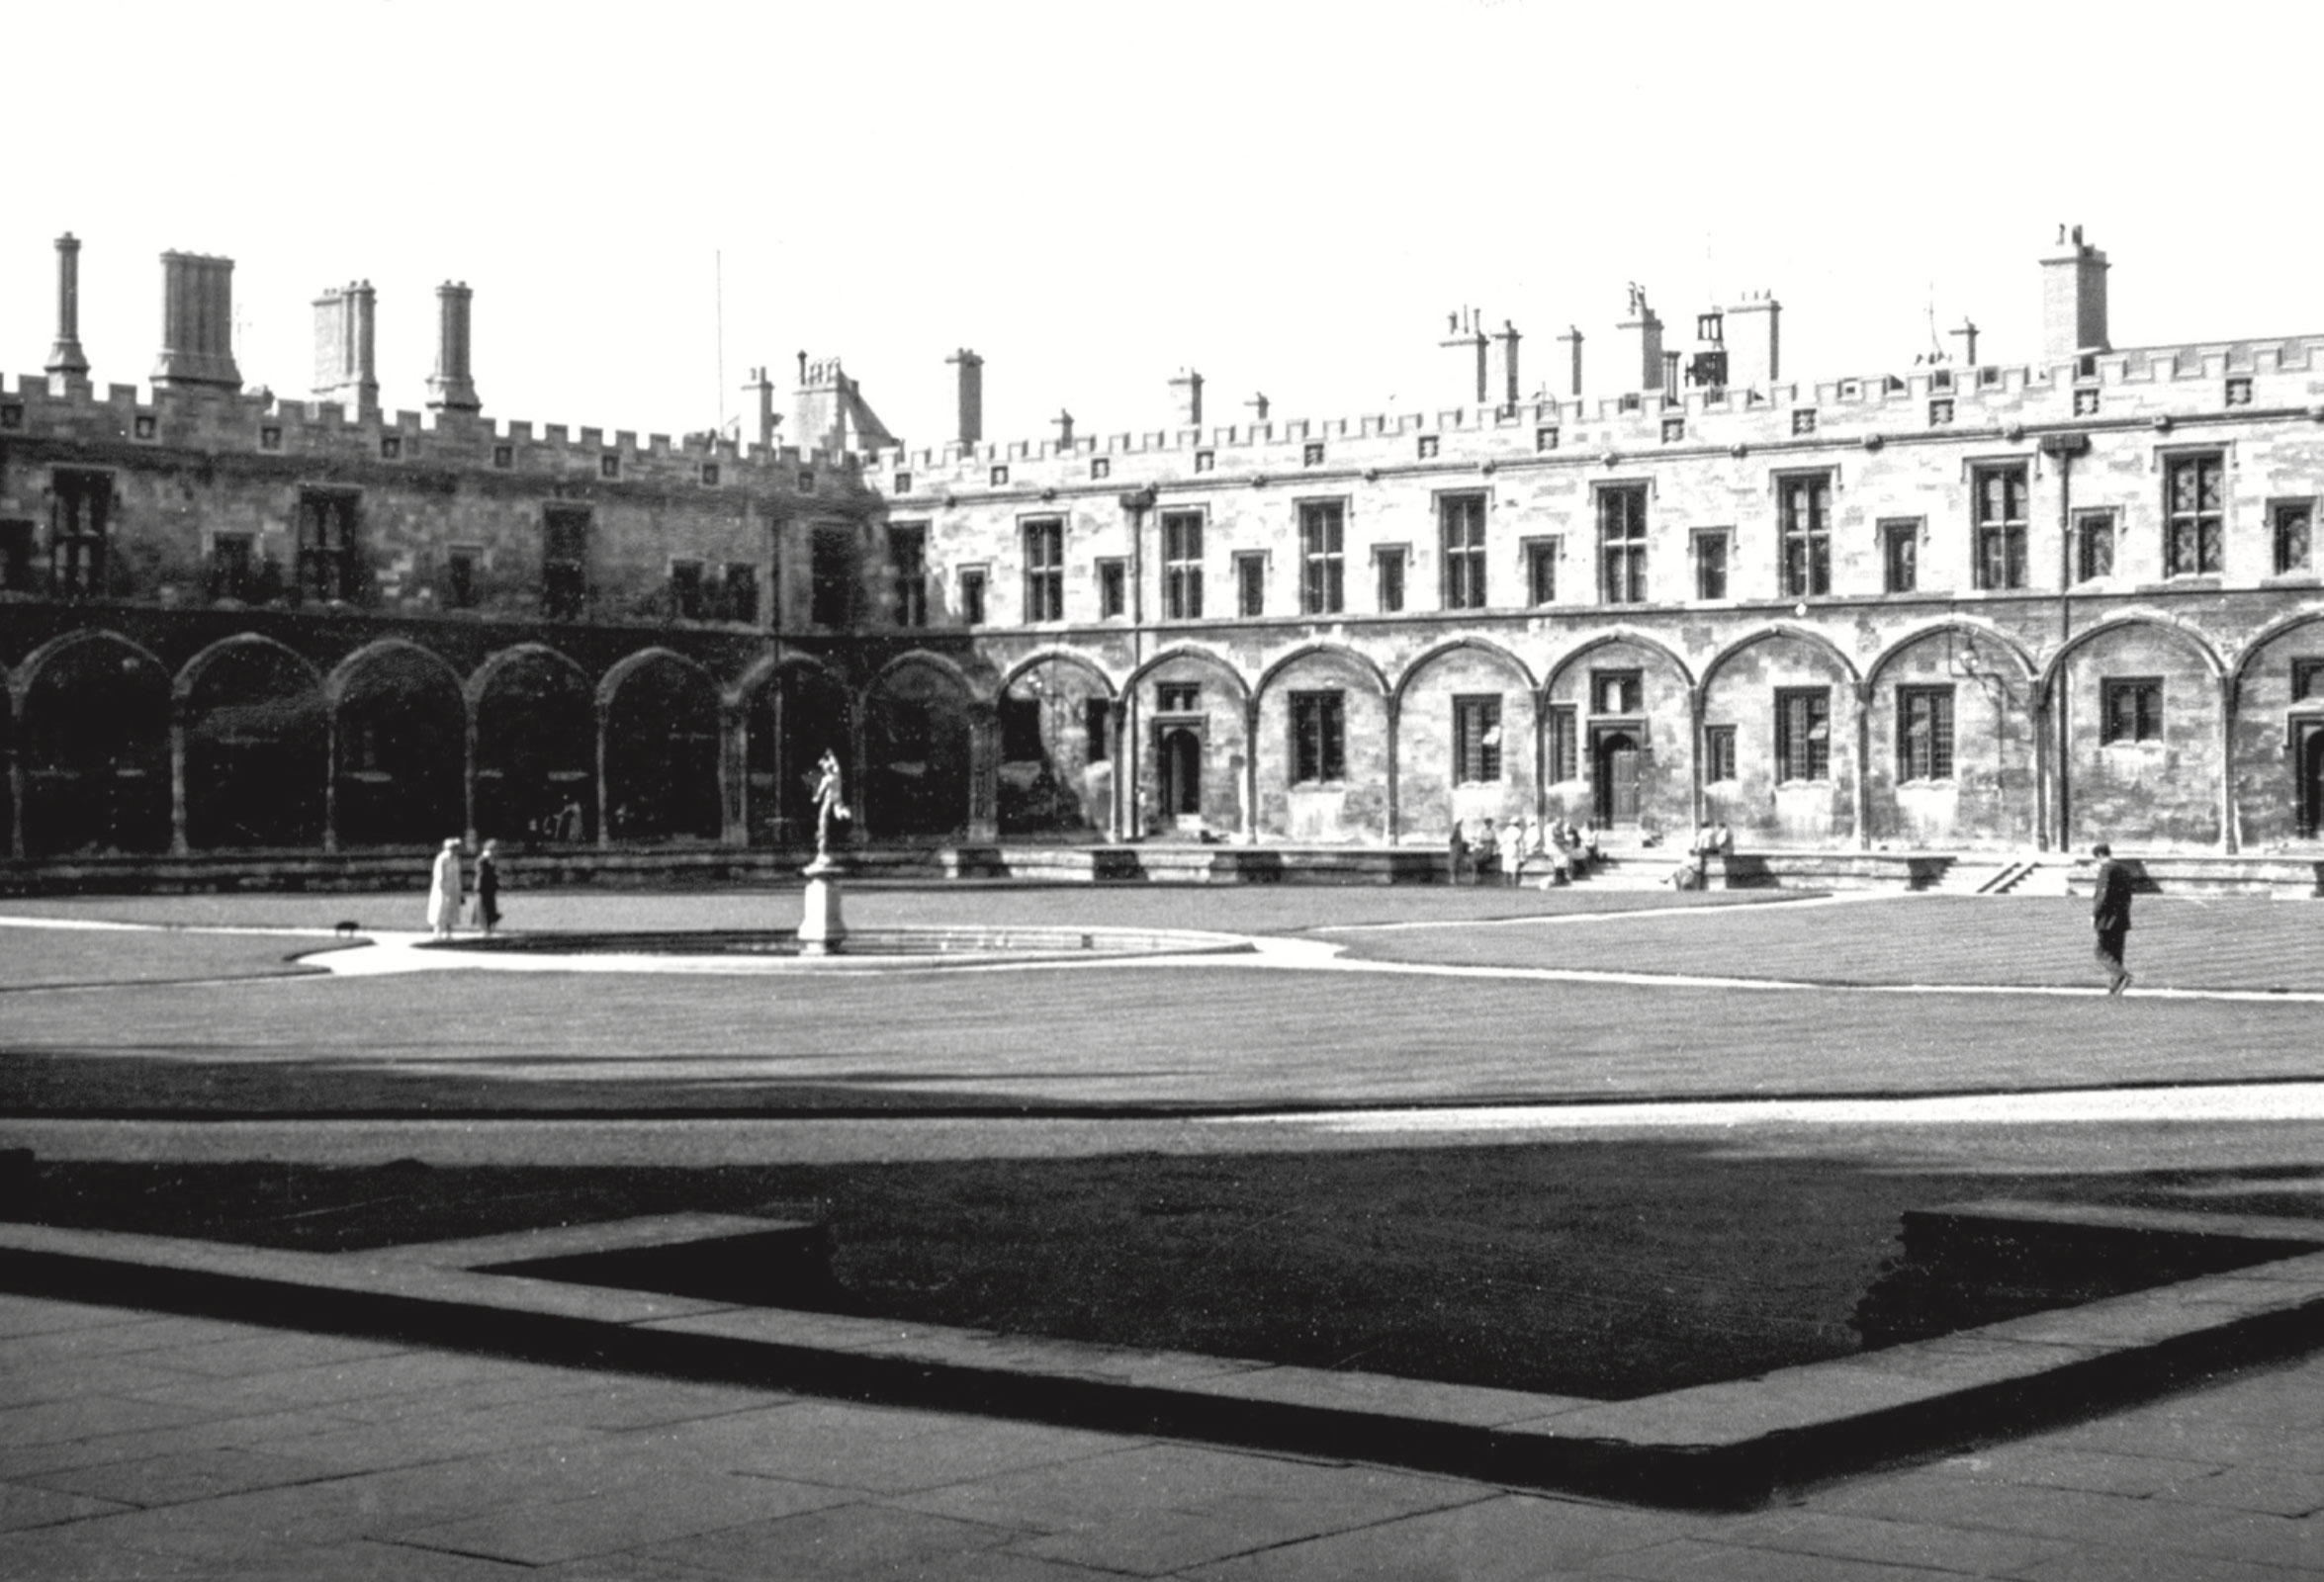 The Great Quadrangle of Christ Church at the University of Oxford